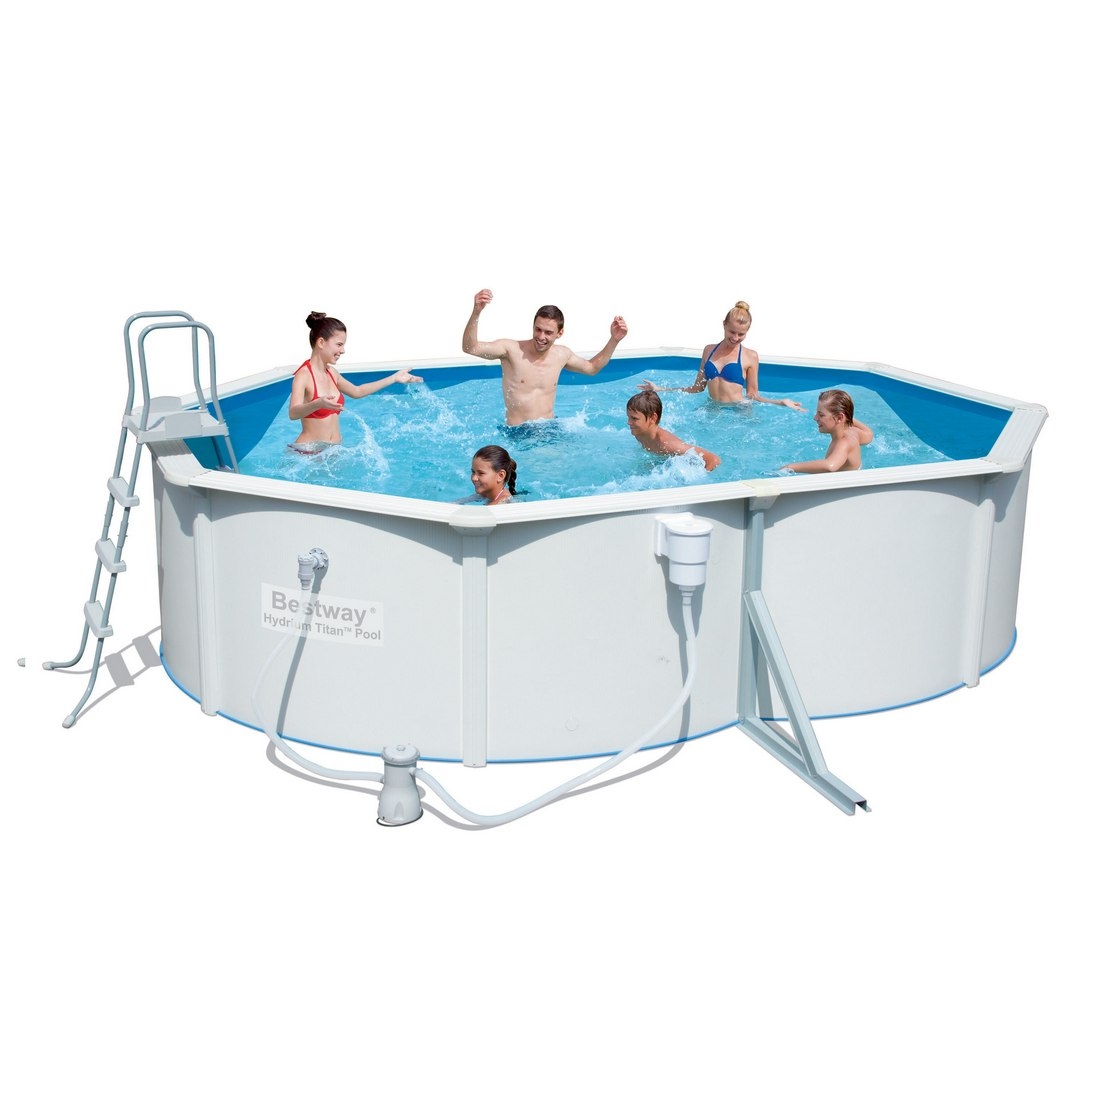 Стальной овальный бассейн Hydrium Oval Pool Set 500х360х120см, 16296л, фил-насос 3028л/ч, лест,подст, BestWay, 56294 BW